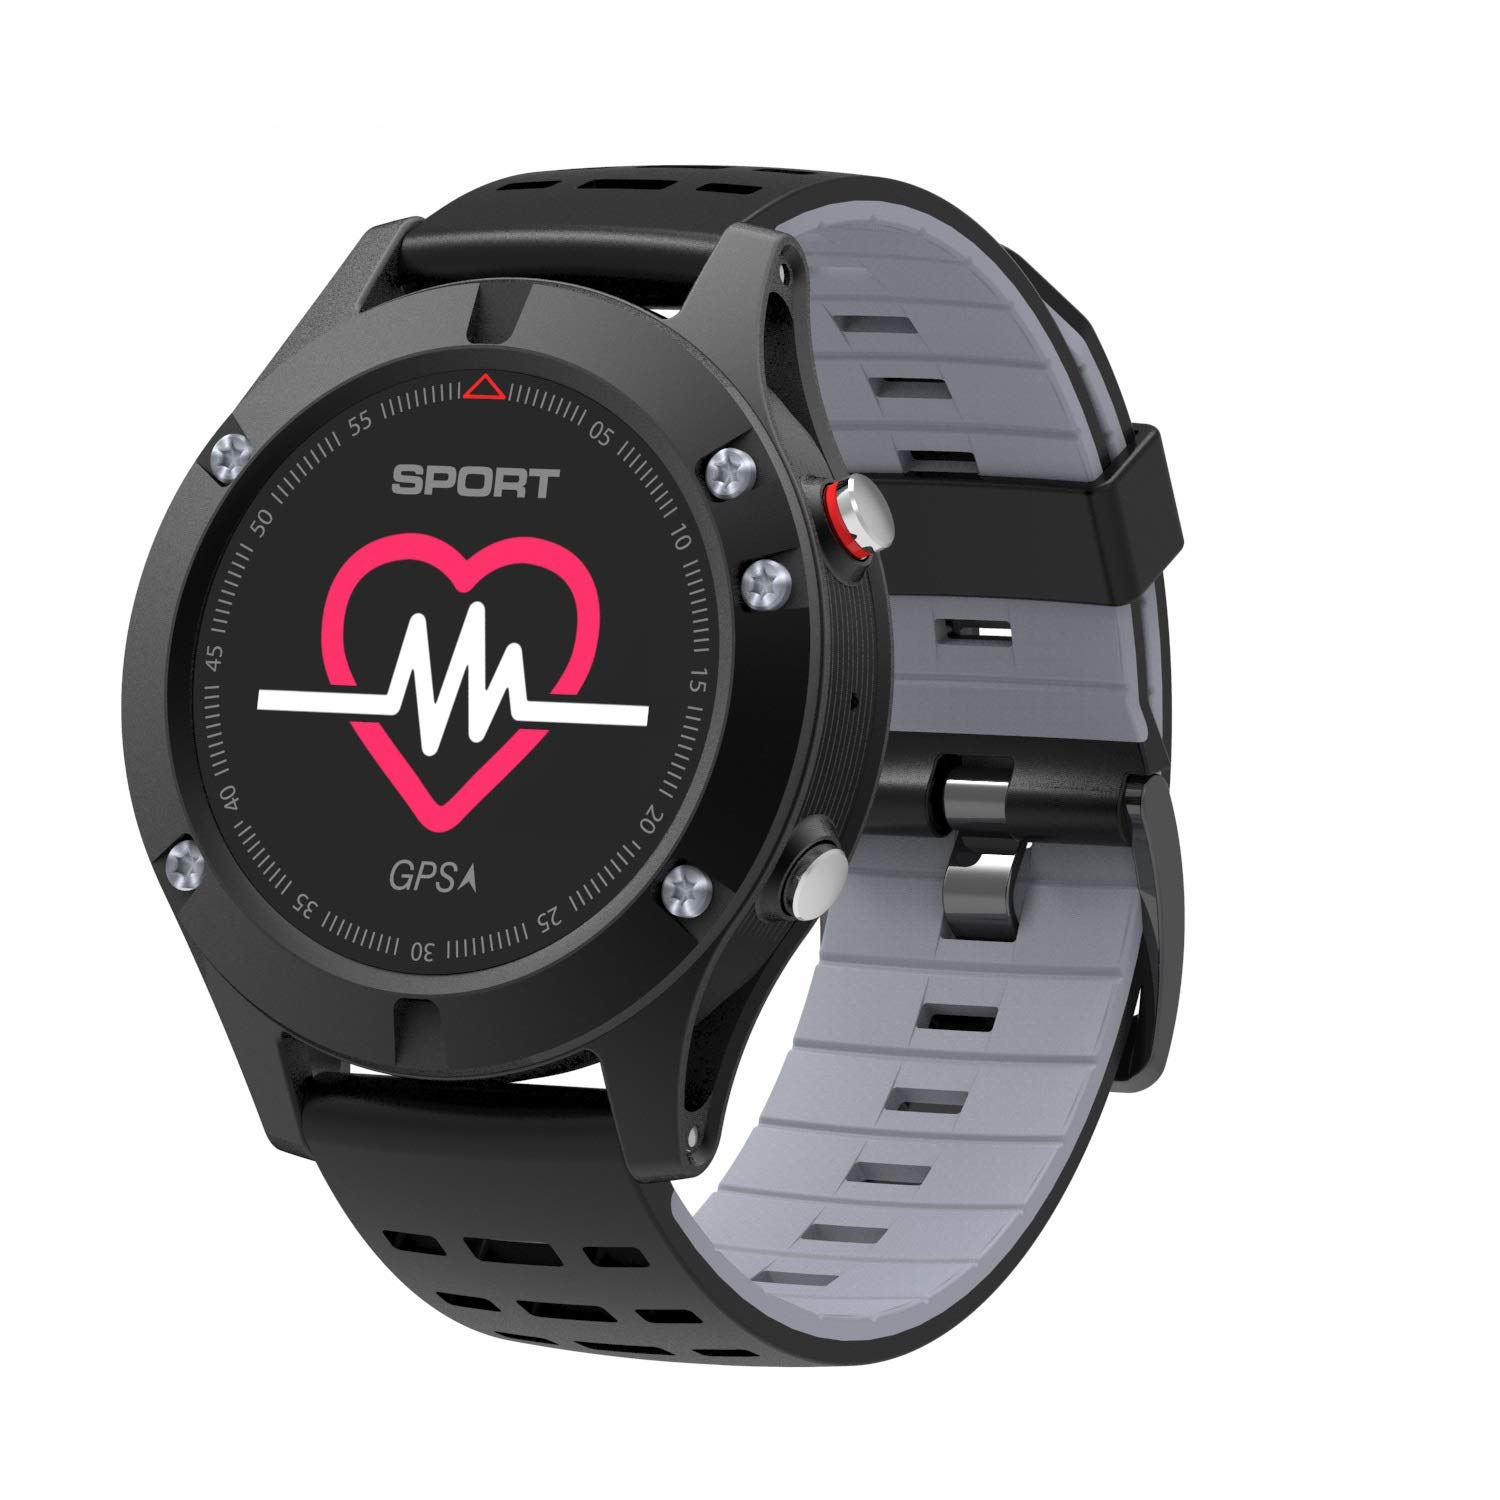 Smart Watch, Bluetooth Smart Watch, Outdoor Sports Fitness Step Counter Smart Watch, GPS Positioning, Sleep Analysis, Compatible with Android and iOS Platforms (Color : Black Gray)